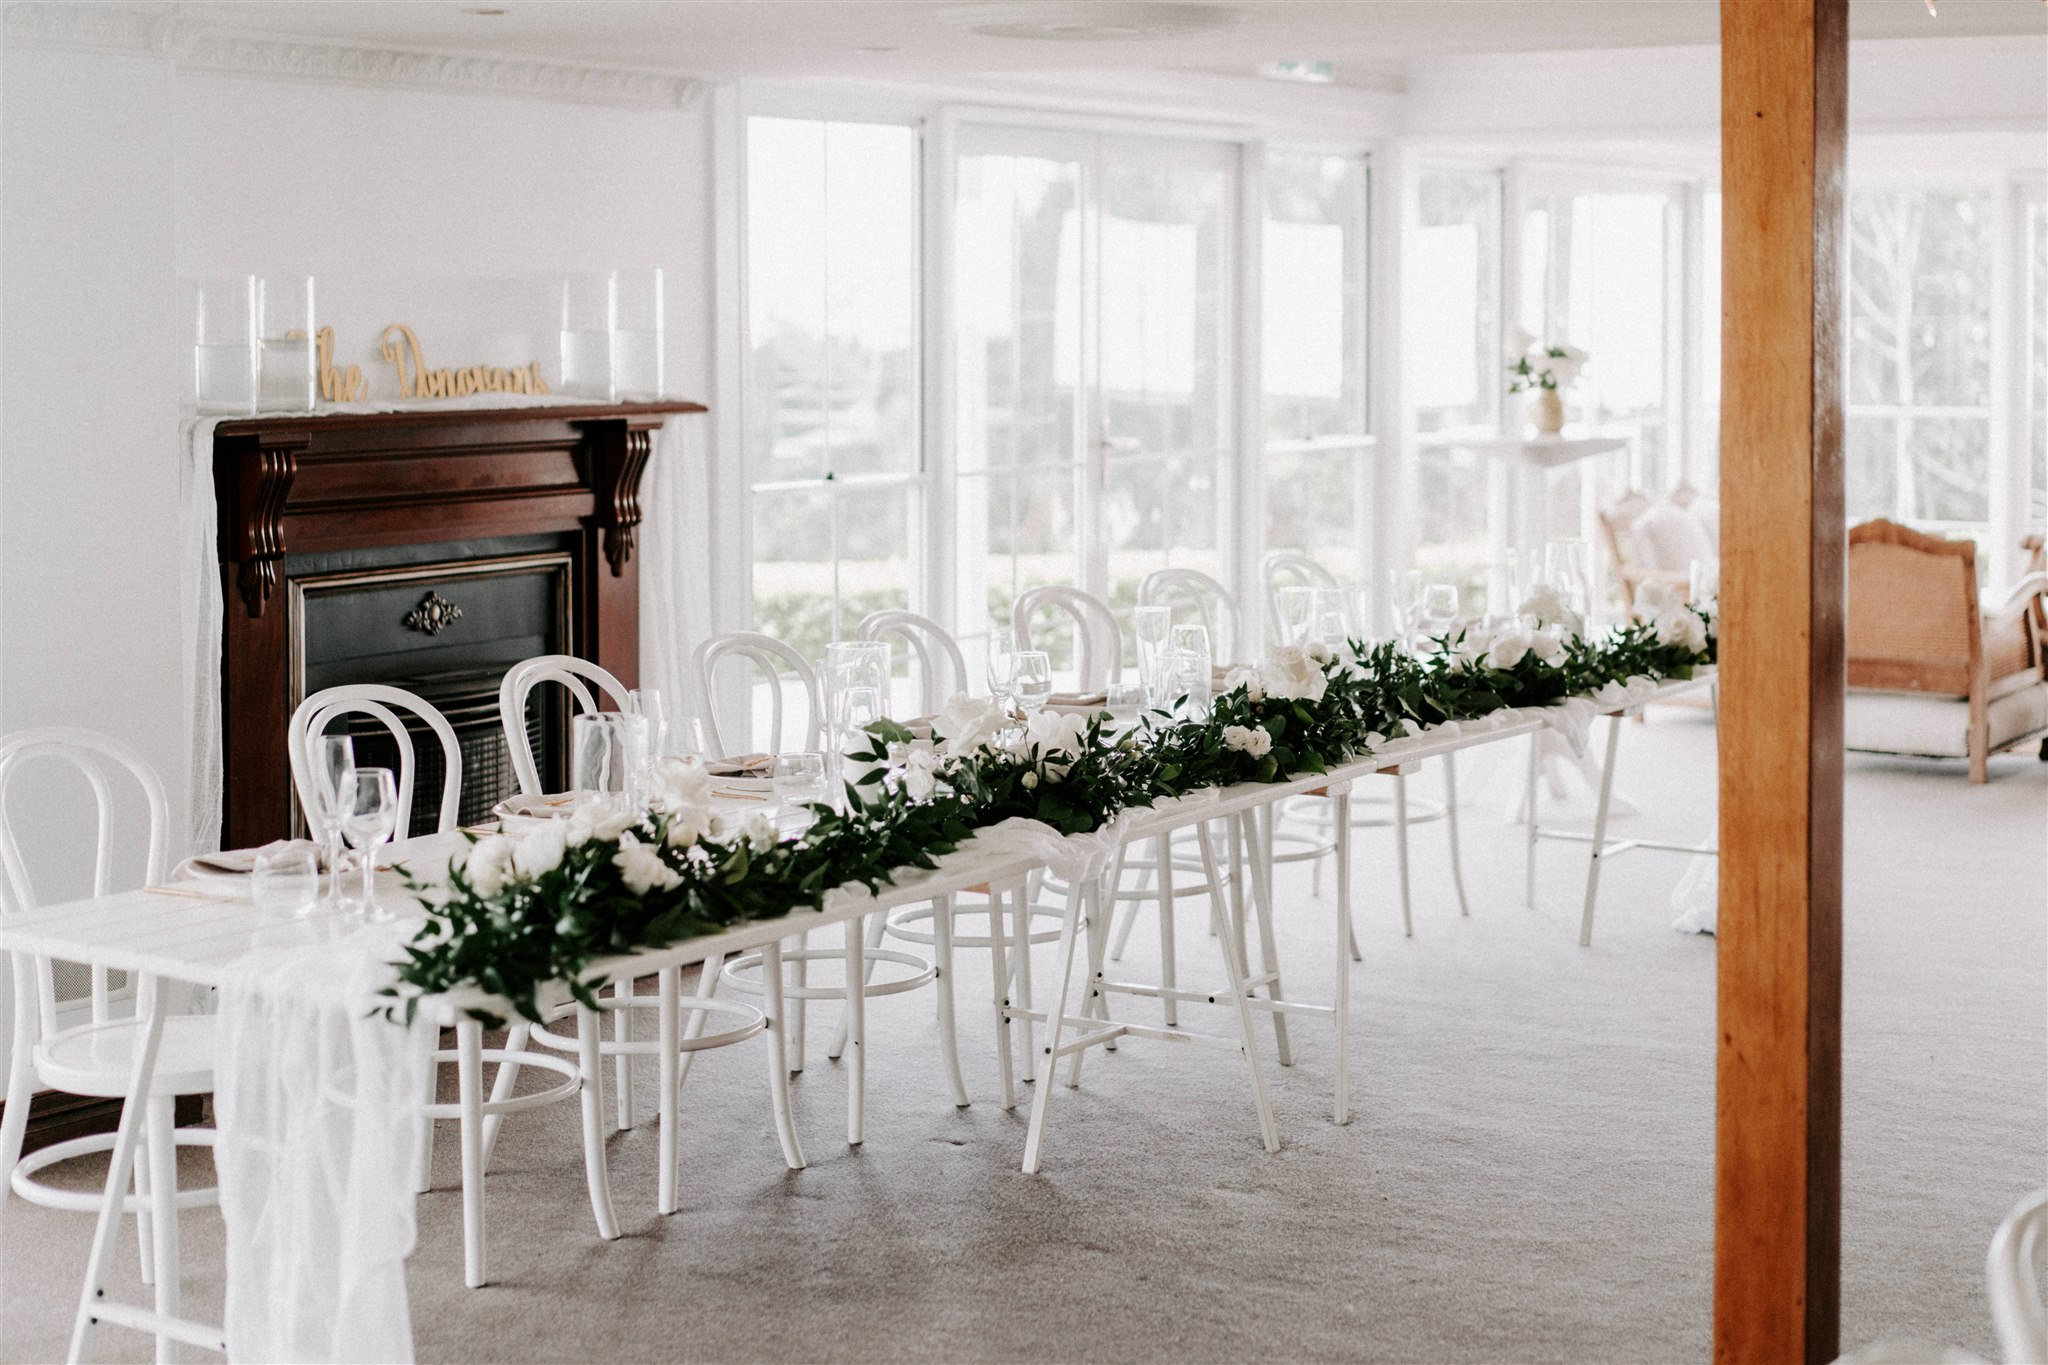 Reception table garlands with lush green foliage